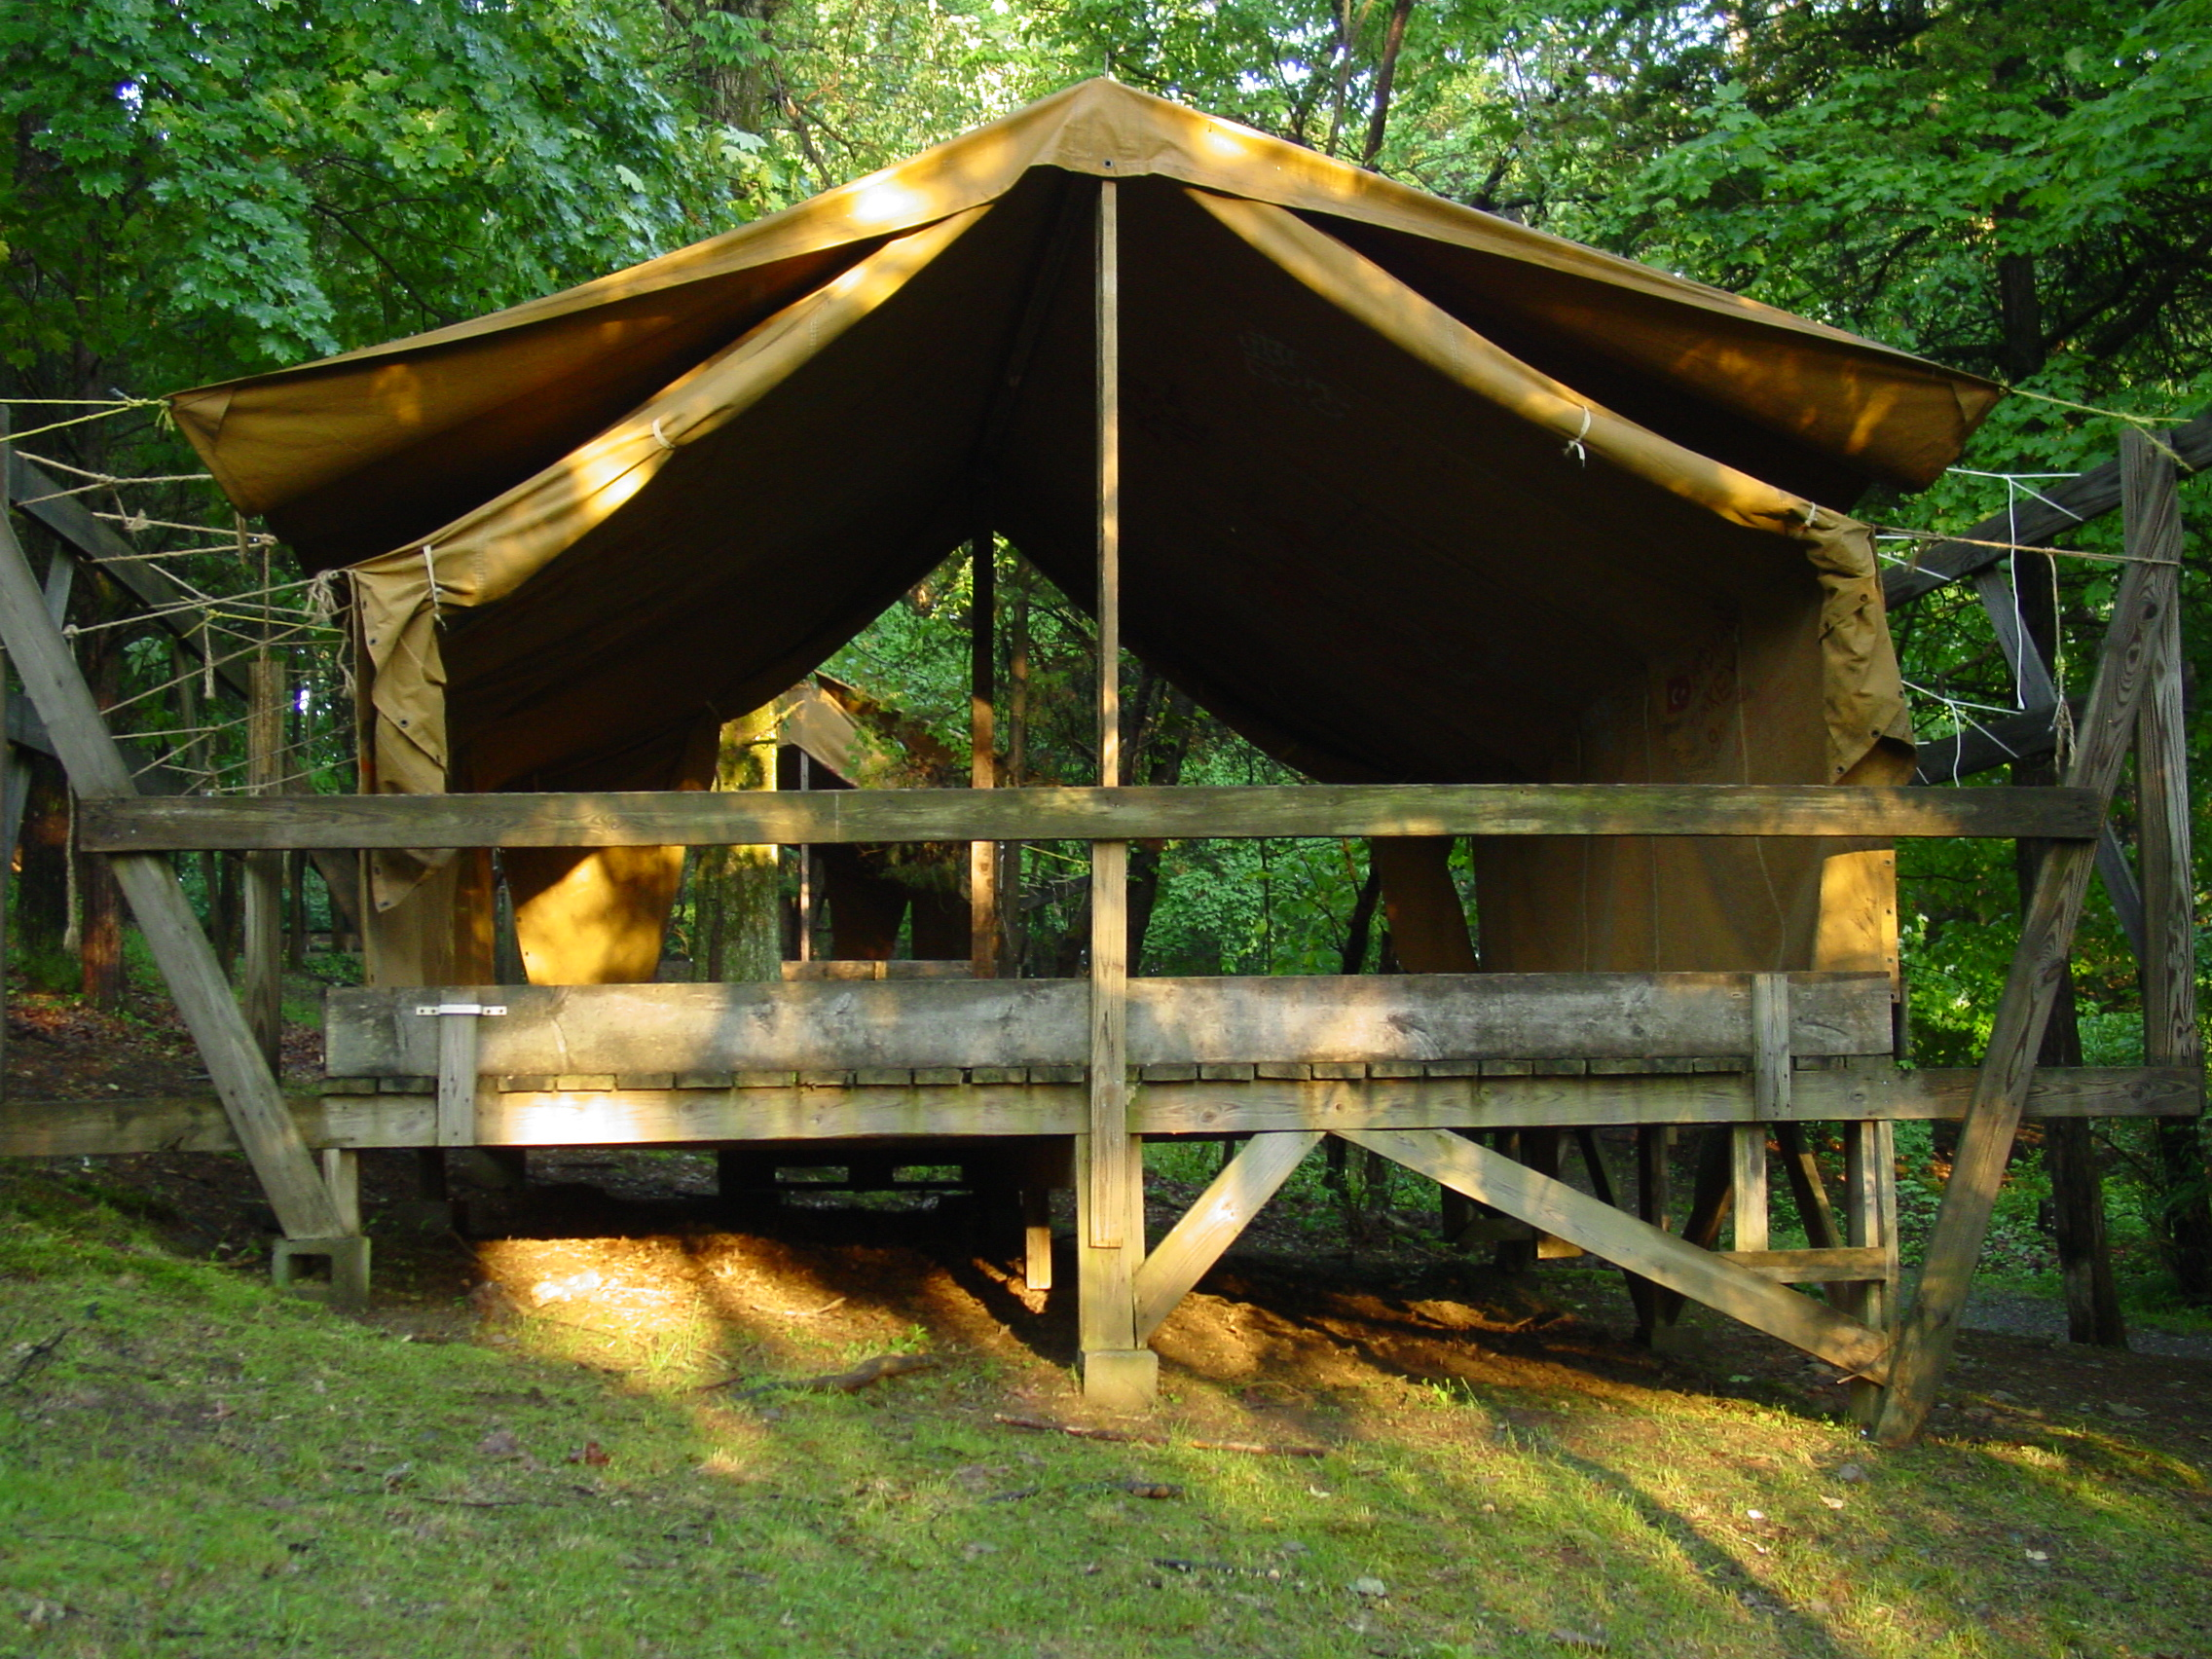 Campers sleep on cots in wooden-platform canvas tents like these.